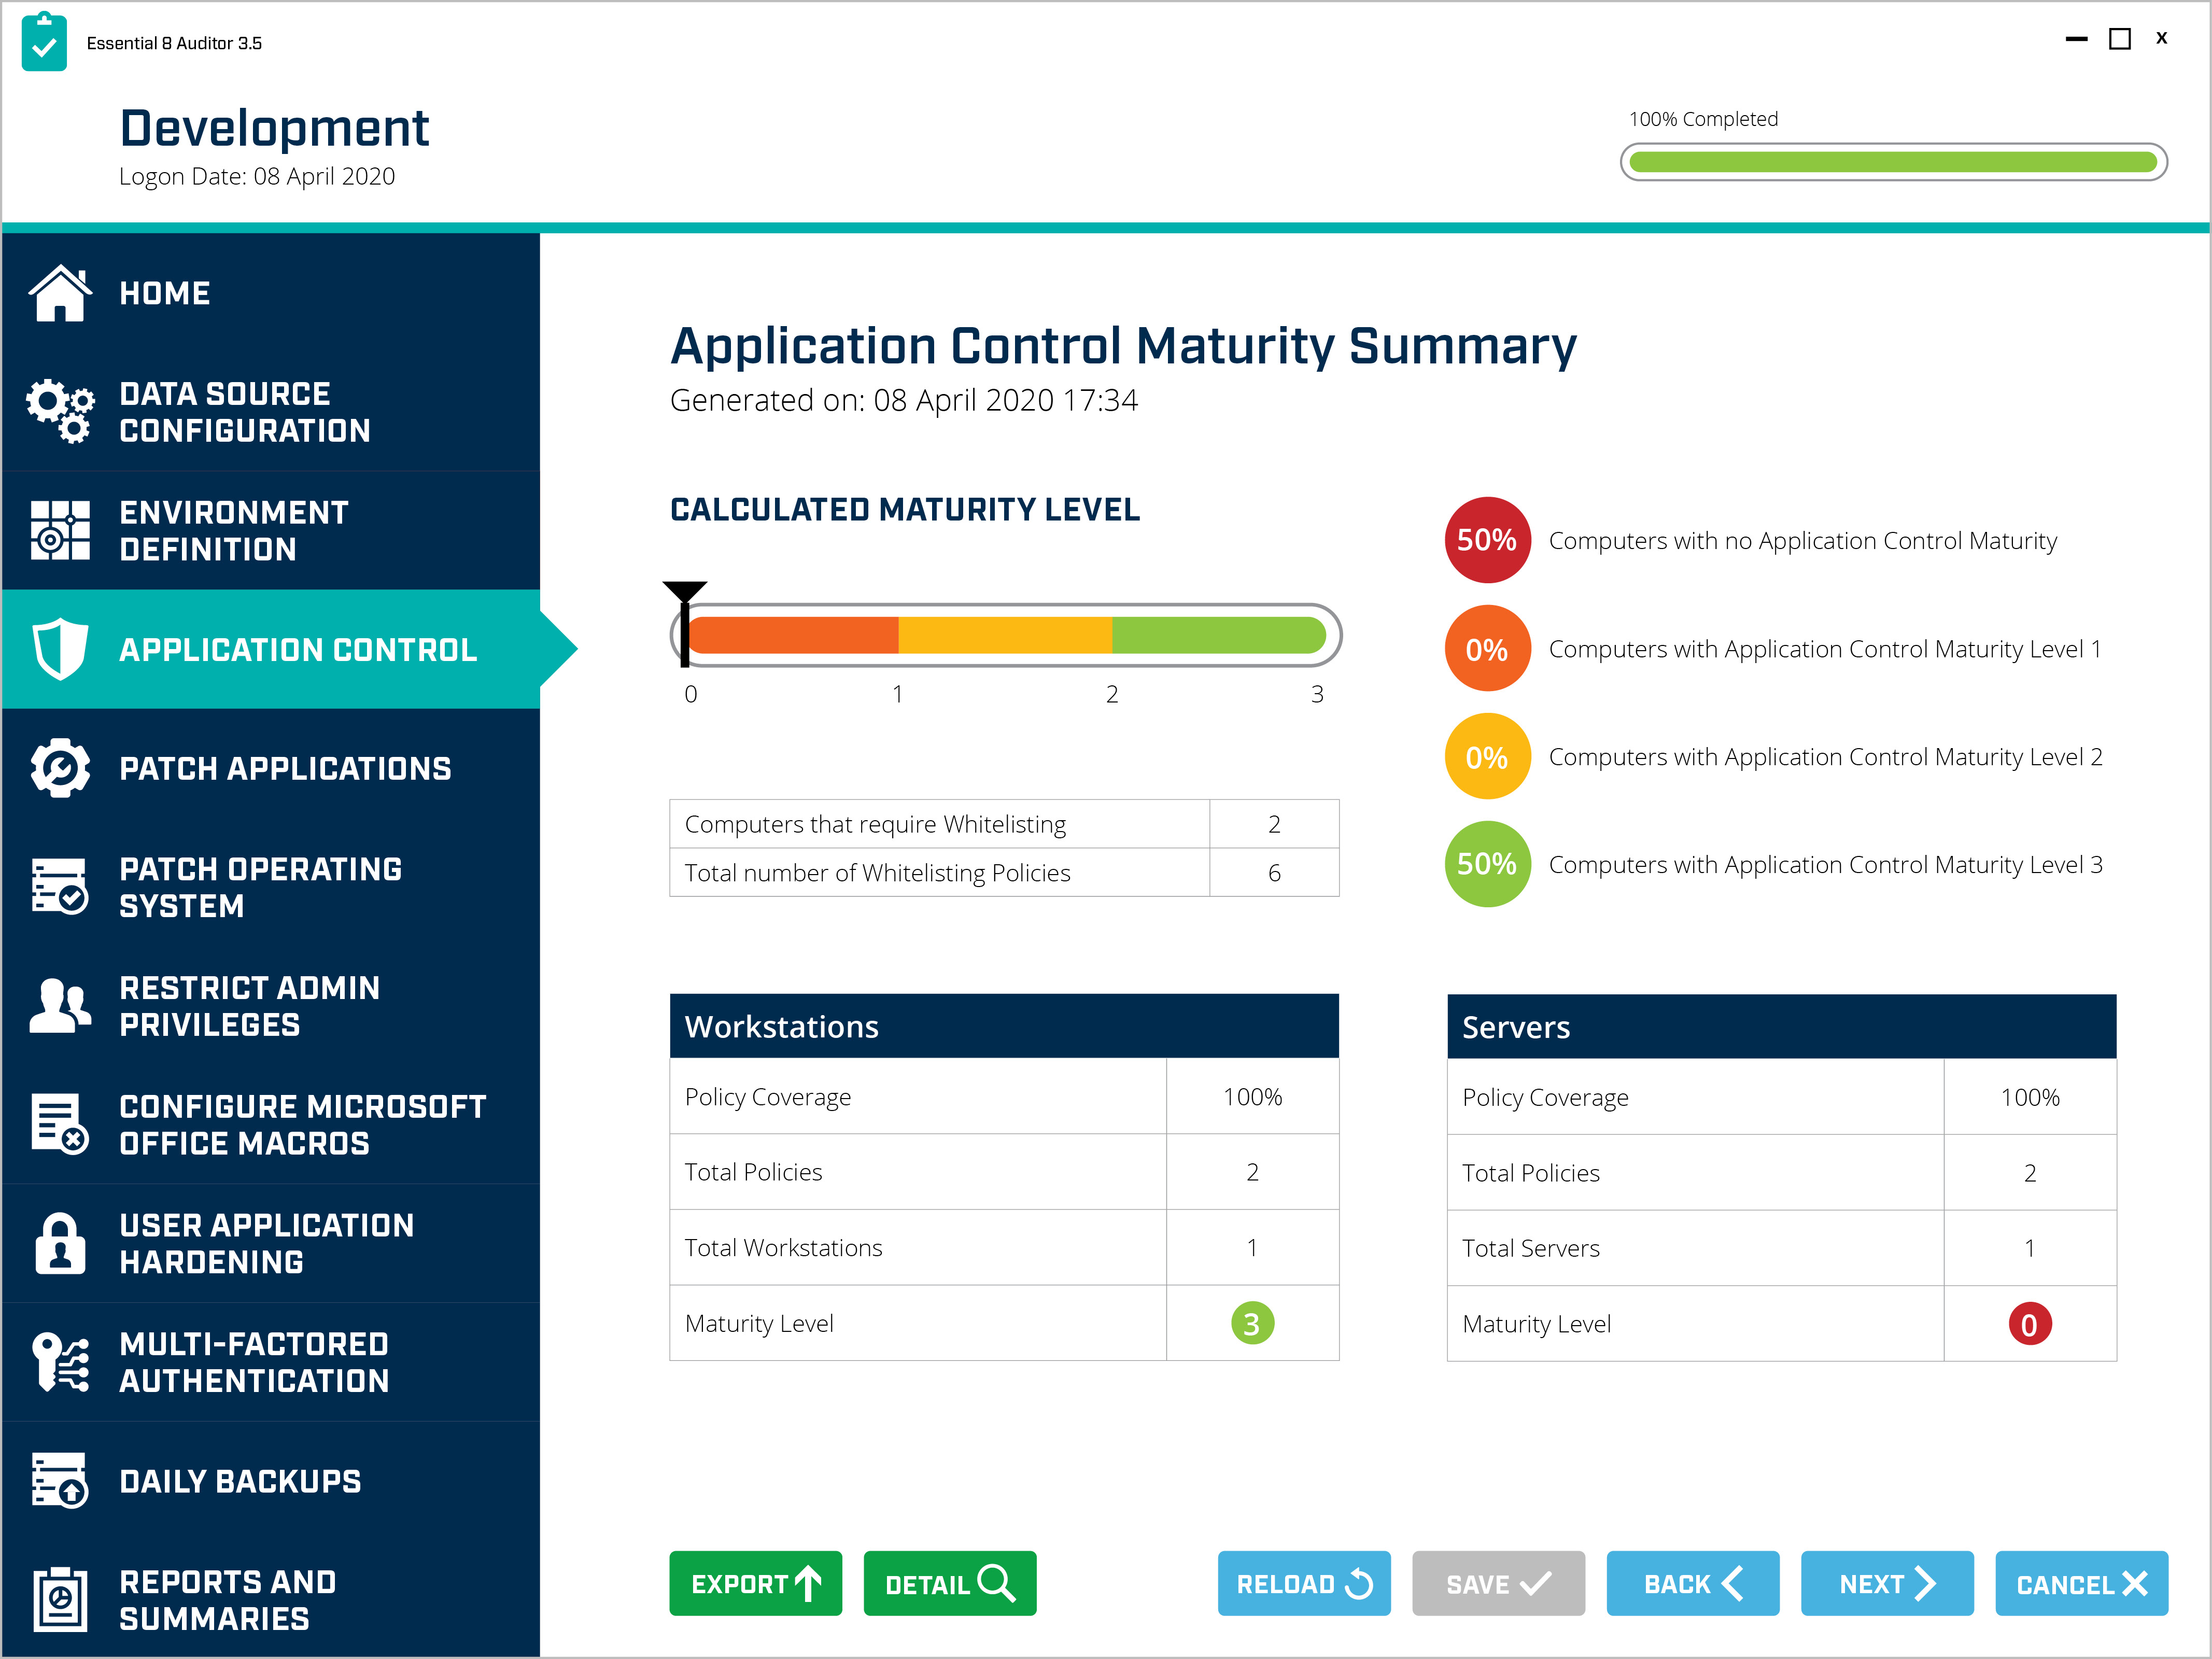 Security control performance metrics generated by IT auditing tool